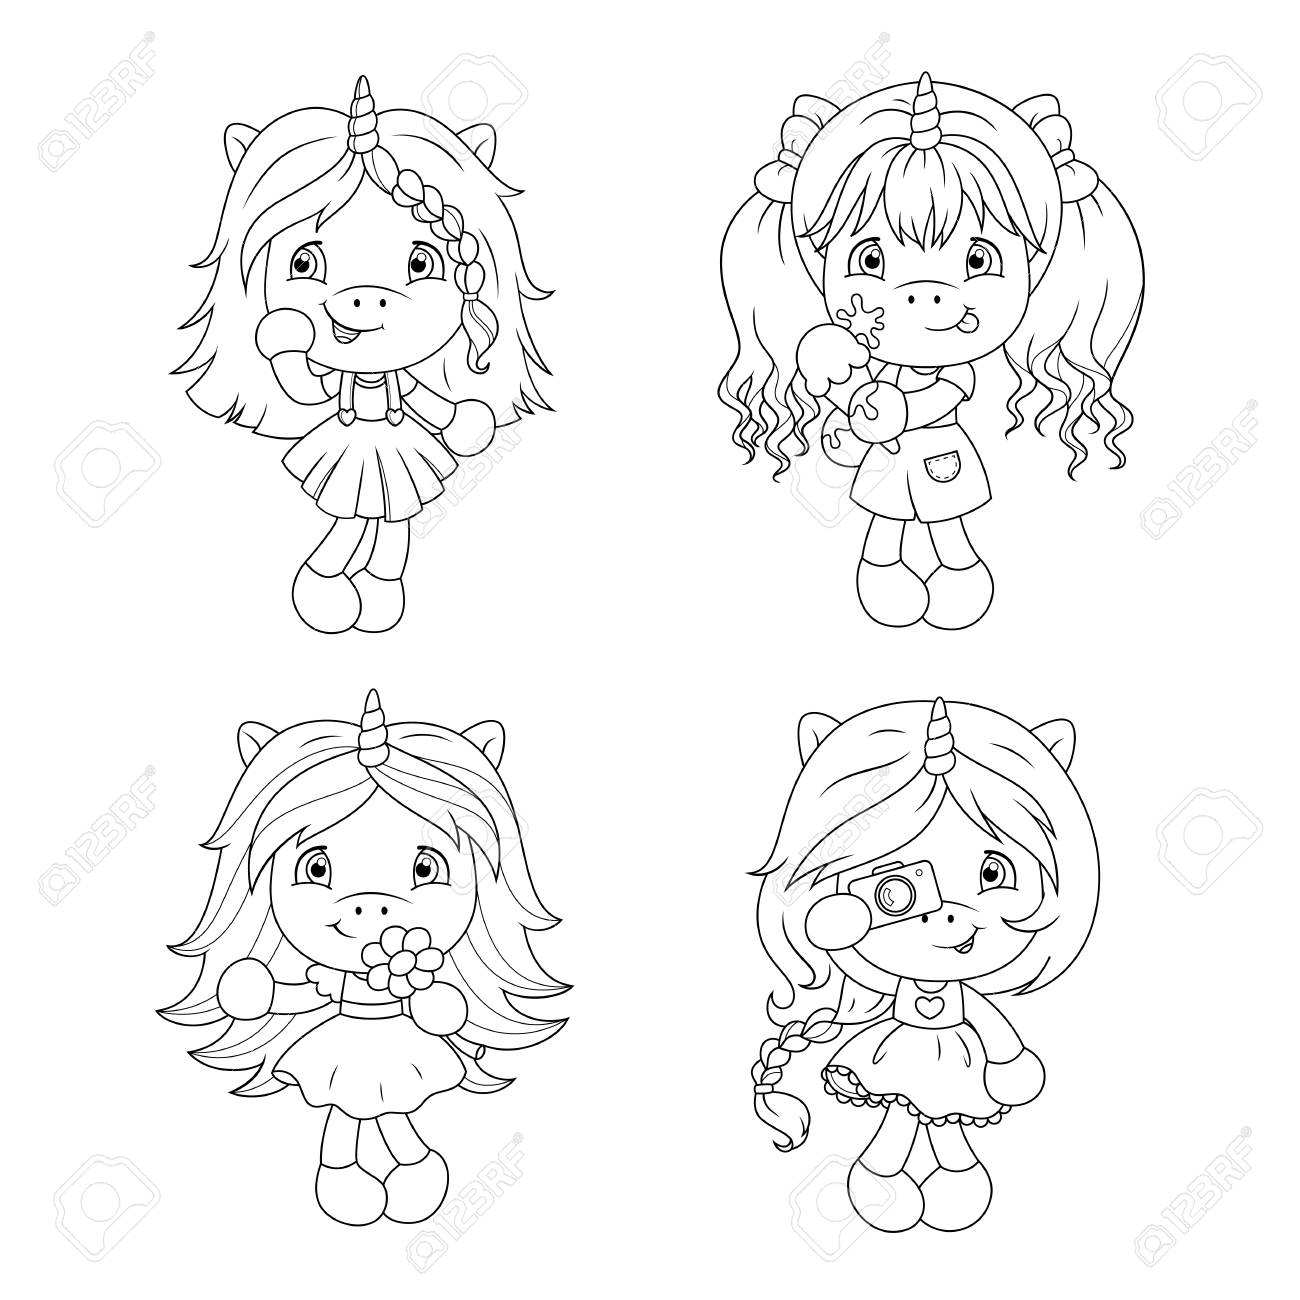 Cute Baby Unicorns Coloring Page For Girls Vector Illustration